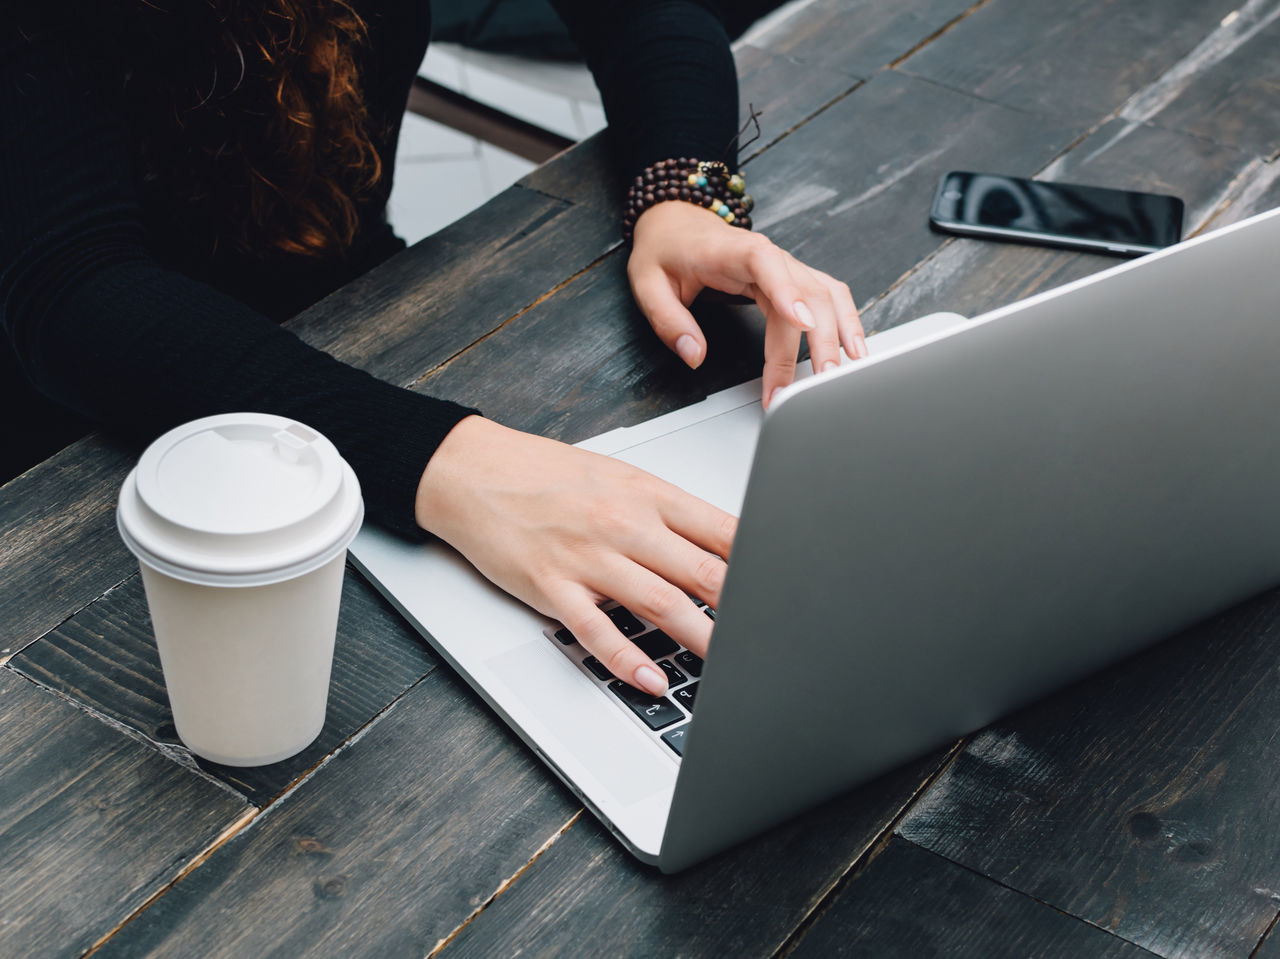 Midsection Of Woman Using Laptop At Table In Office